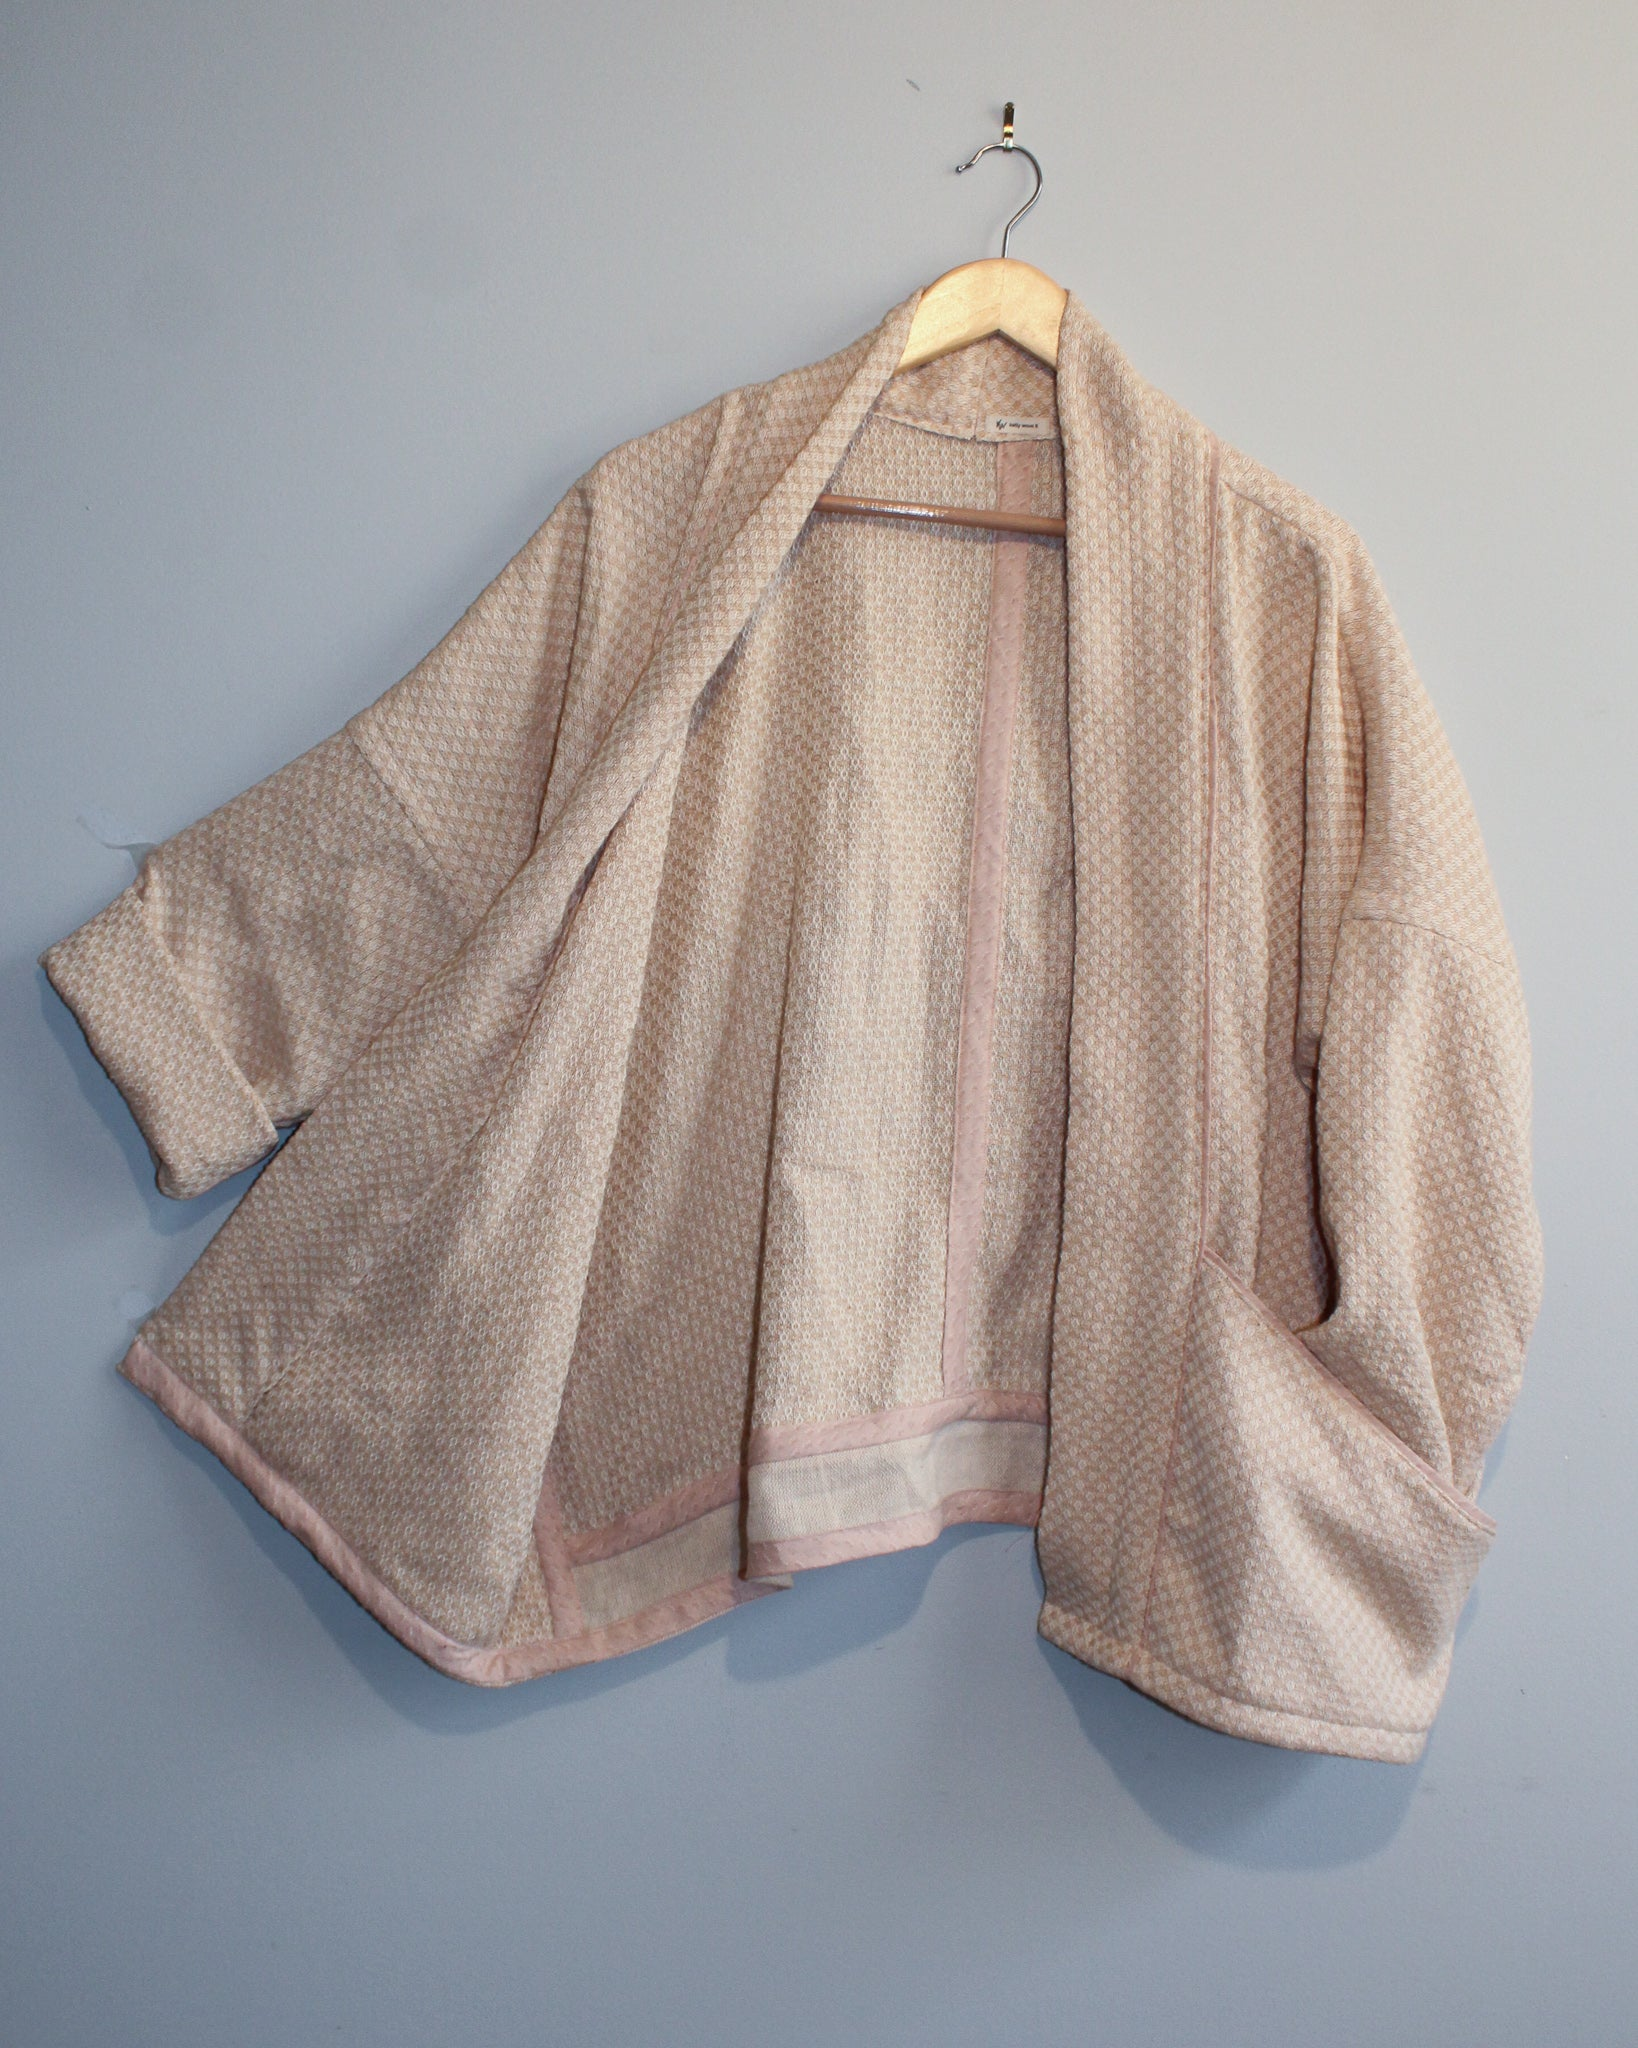 Photo of the full jacket, from the front hanging on a hanger.